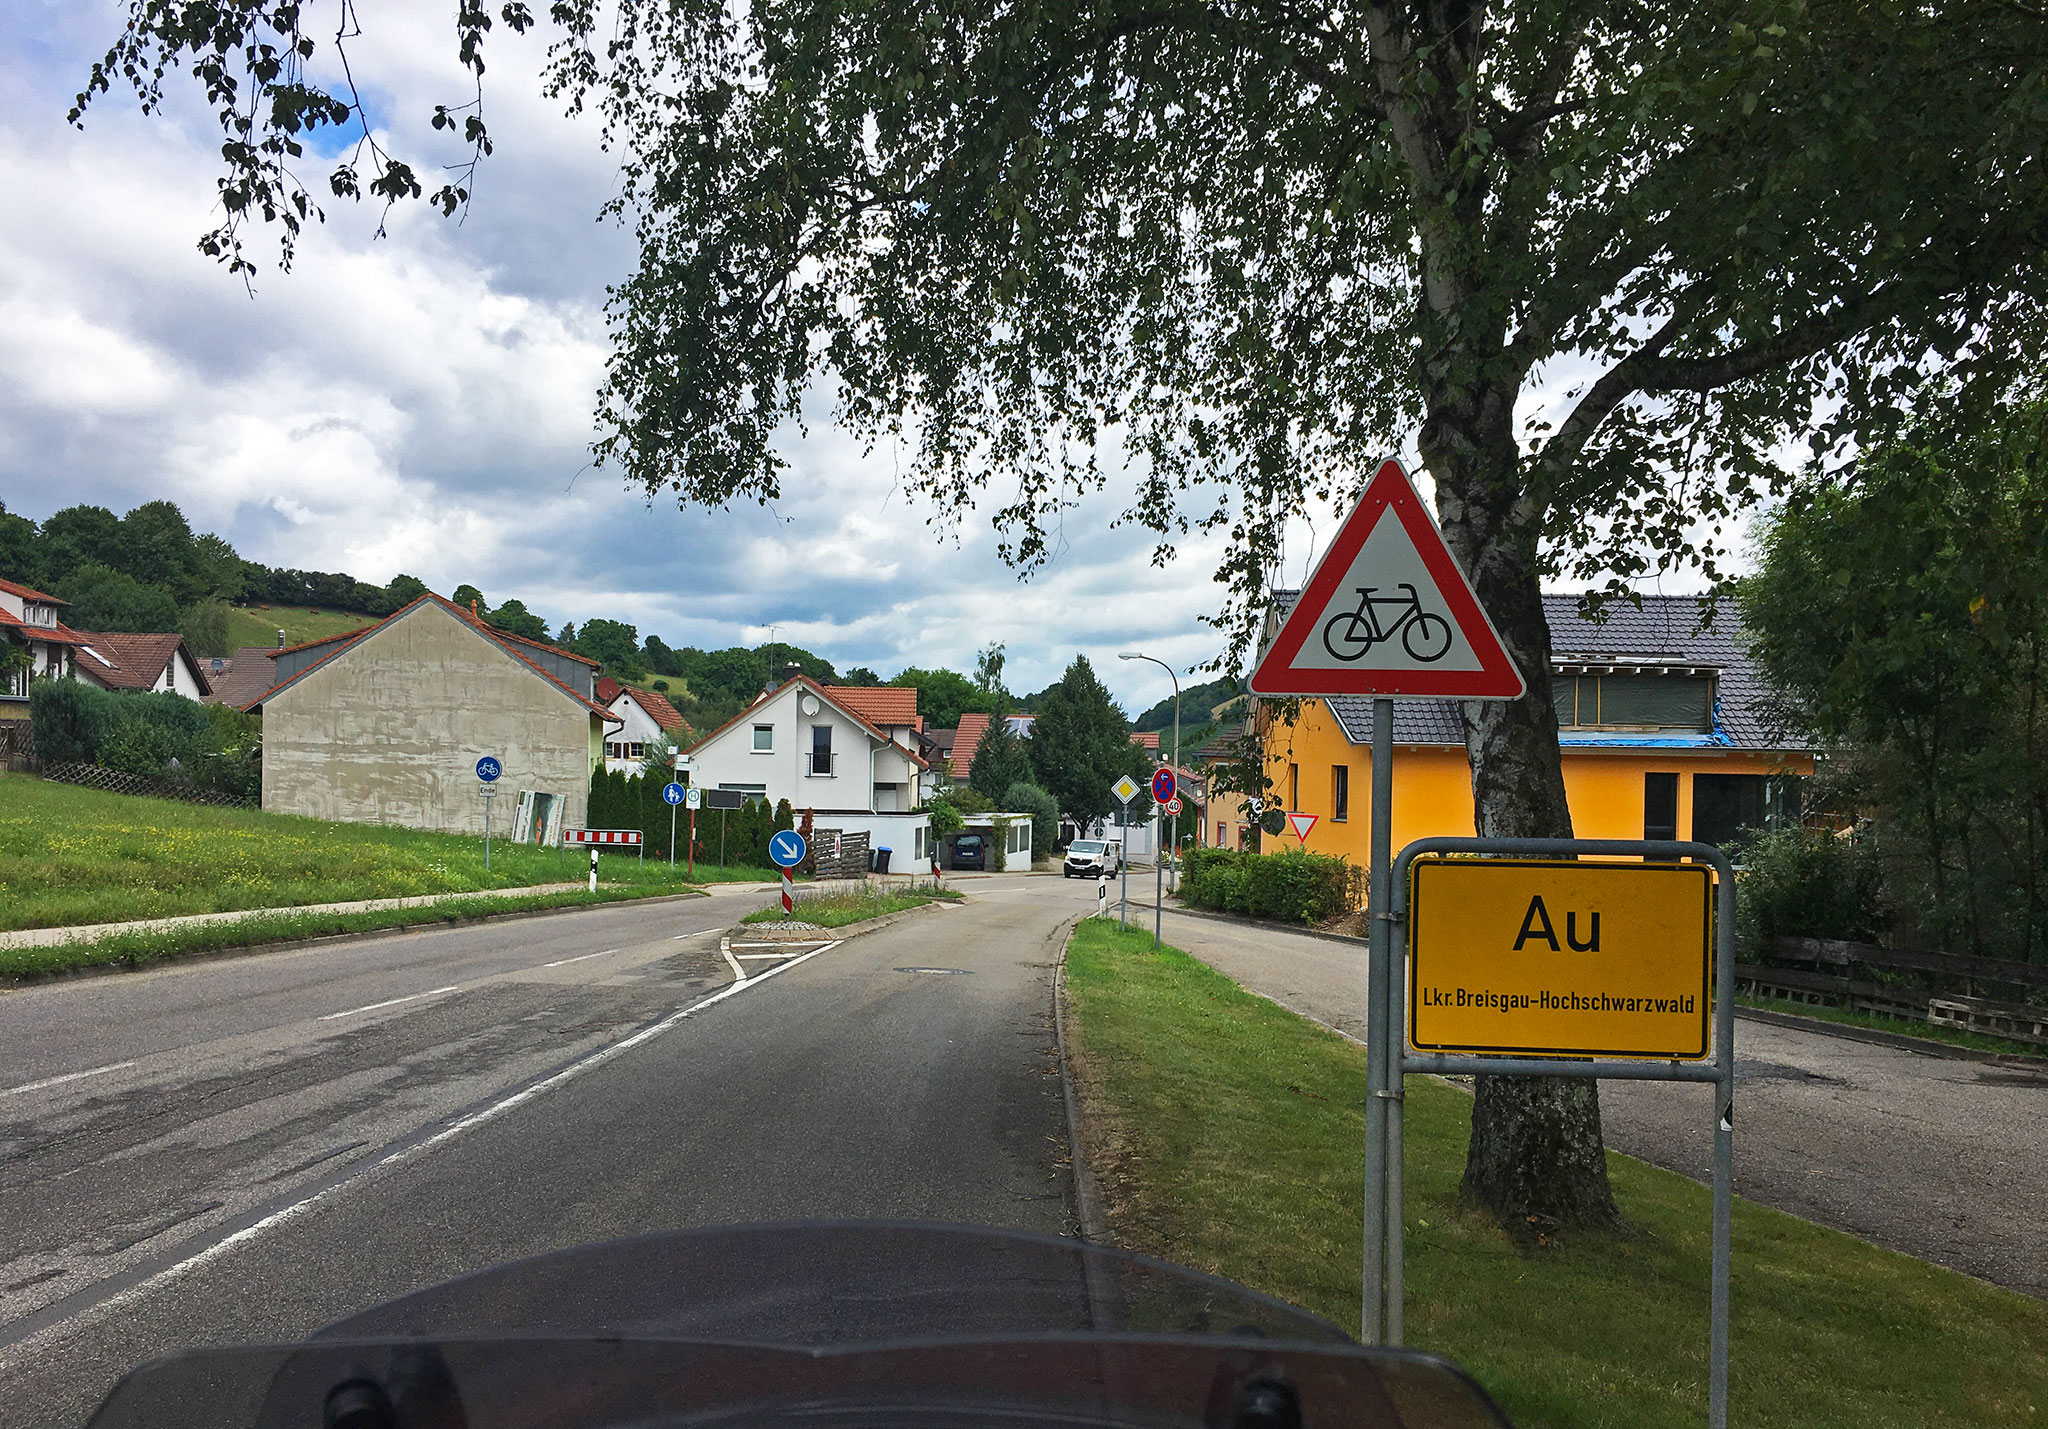 Passing through the village of Au (ouch in Norwegian)